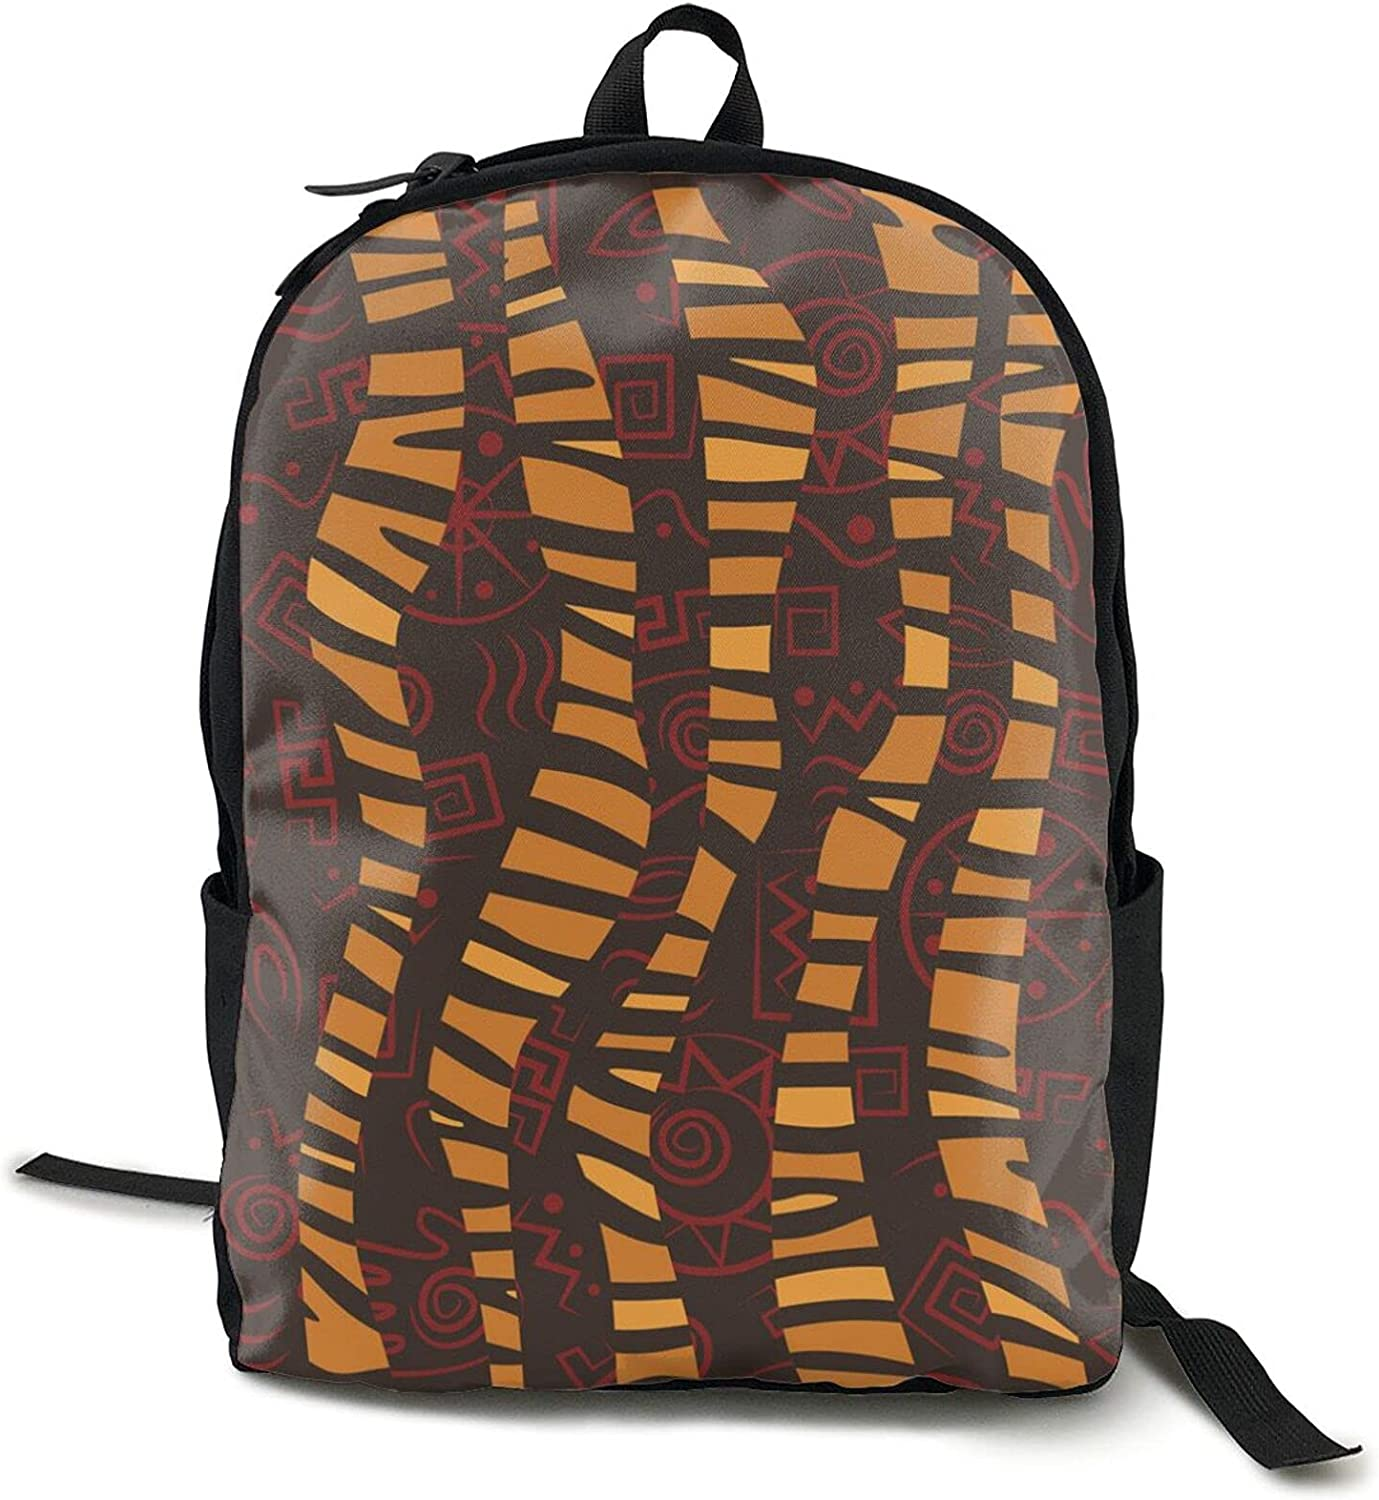 African ethnic pattern New products world's highest quality popular vintage print Backpack Leisure 1 Ch Adult outlet